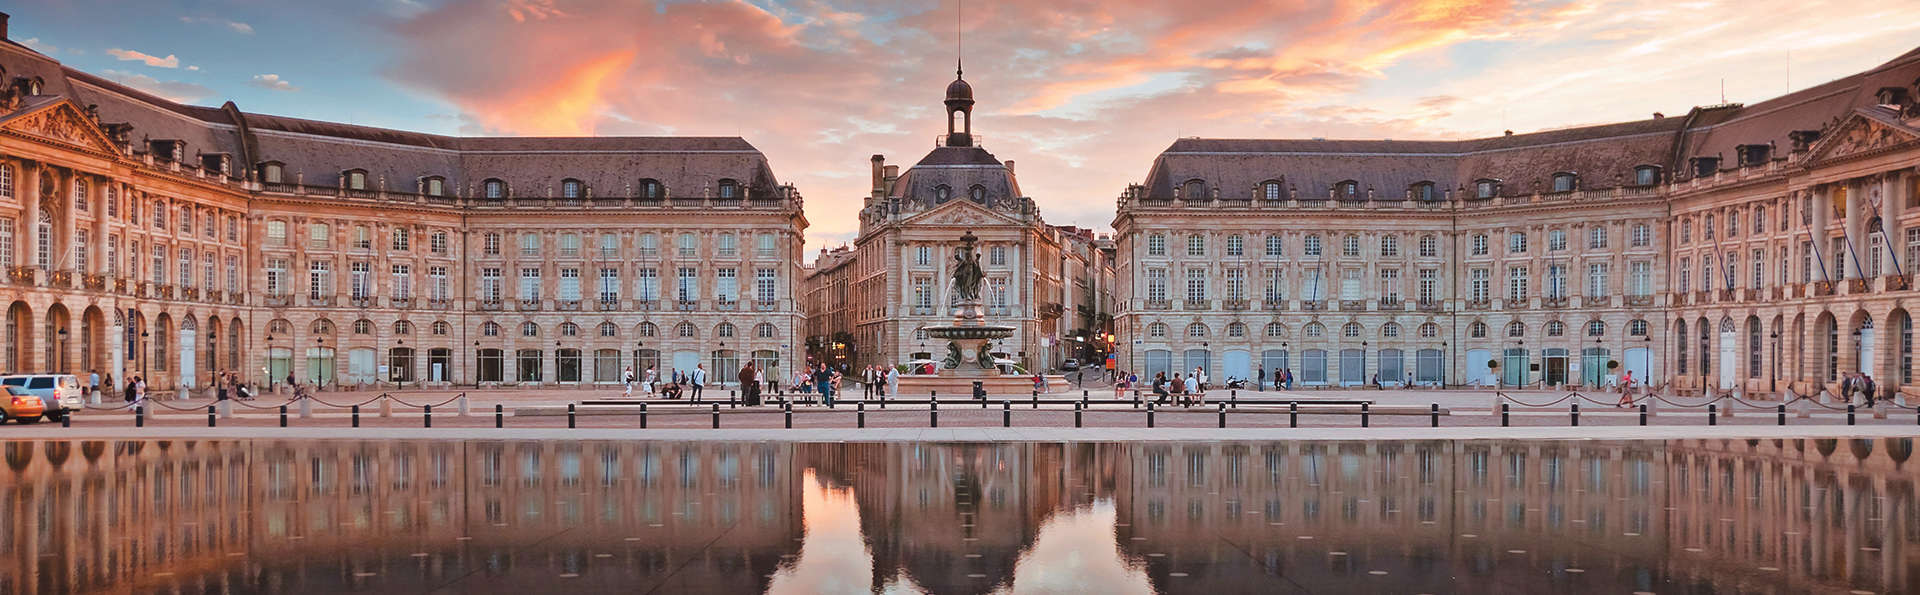 Best Western Plus Gare Saint Jean  - EDIT_Bordeaux3.jpg